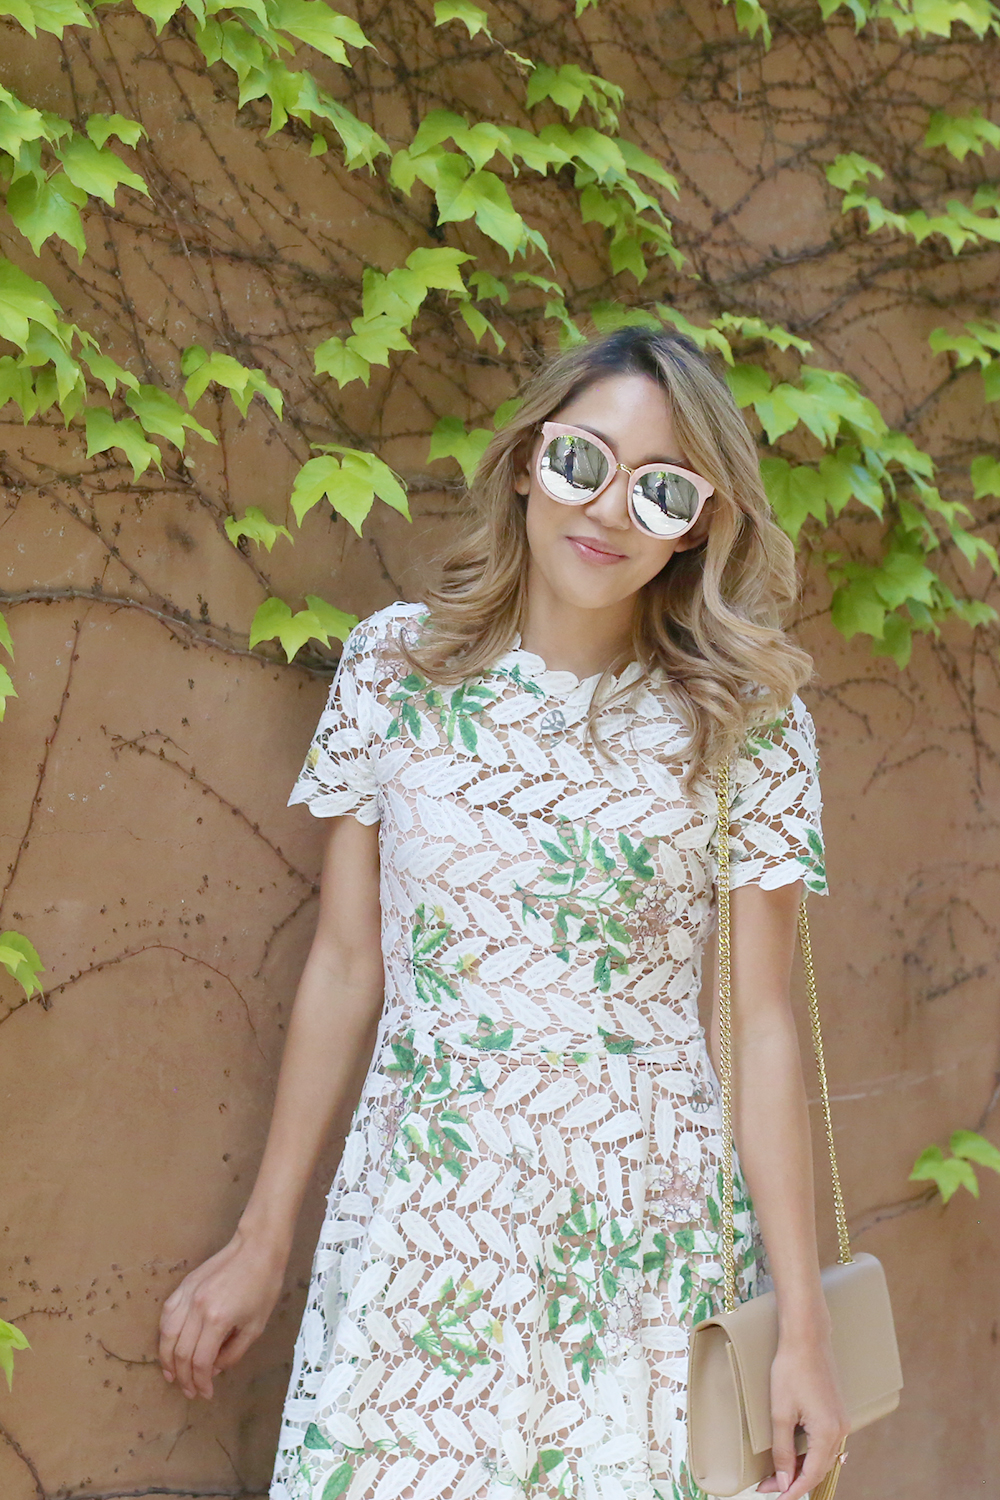 Beyond Basic Blog White Dresses for Spring Chicwish Wildflower Crochet Dress Gentle Monster Lovesome Sunglasses